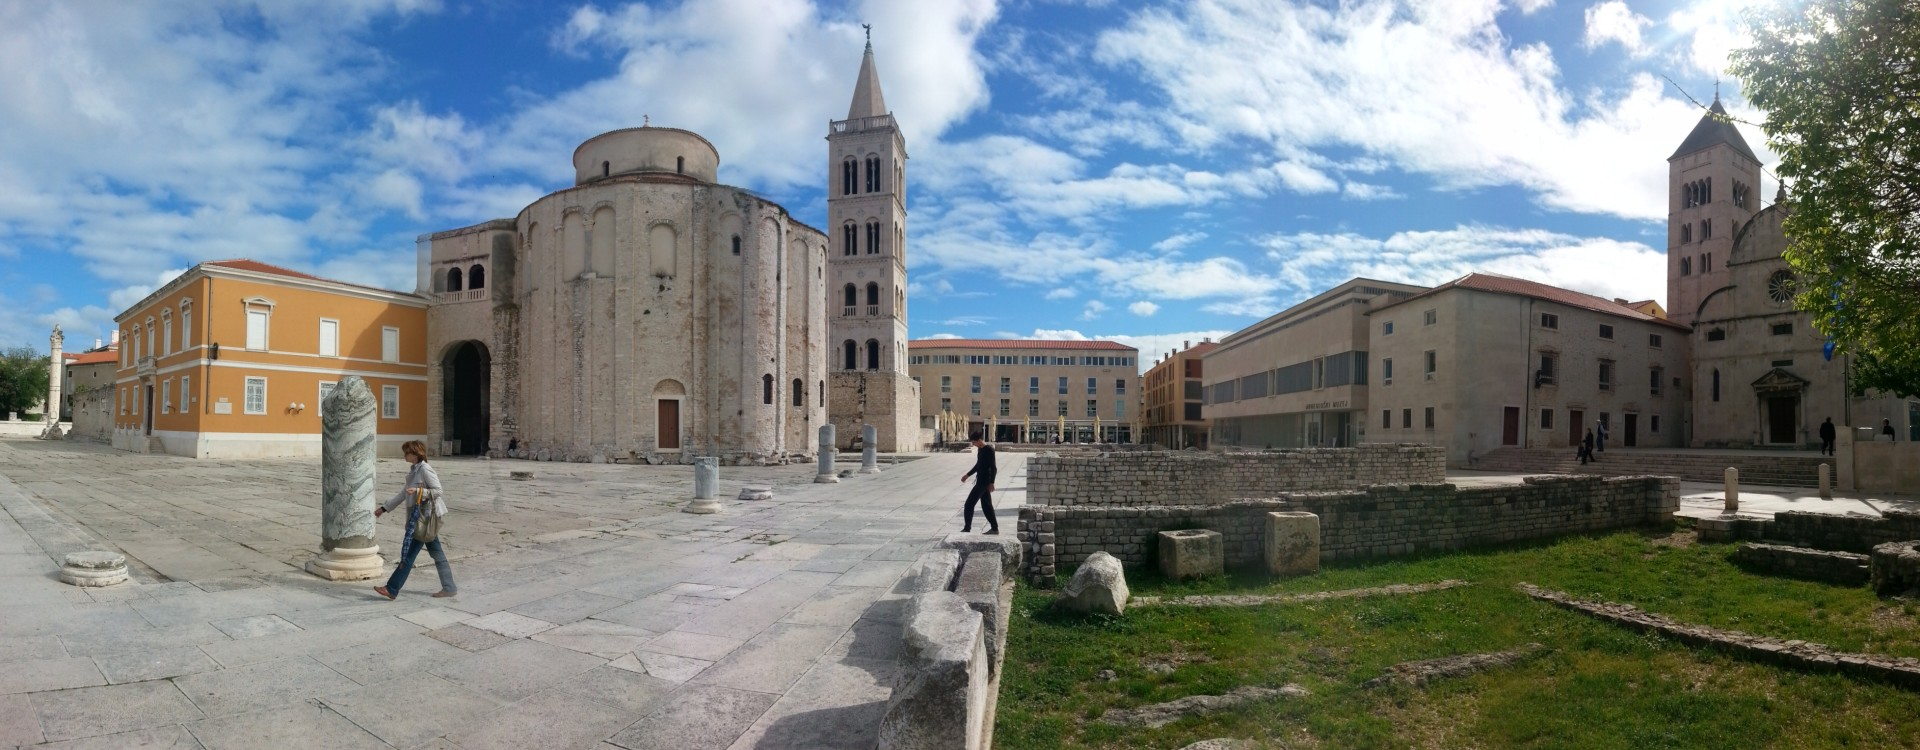 Church of St.. Donat from the 9th century, which was built on the ruins of the Roman Forum, the symbol of the town Zadar